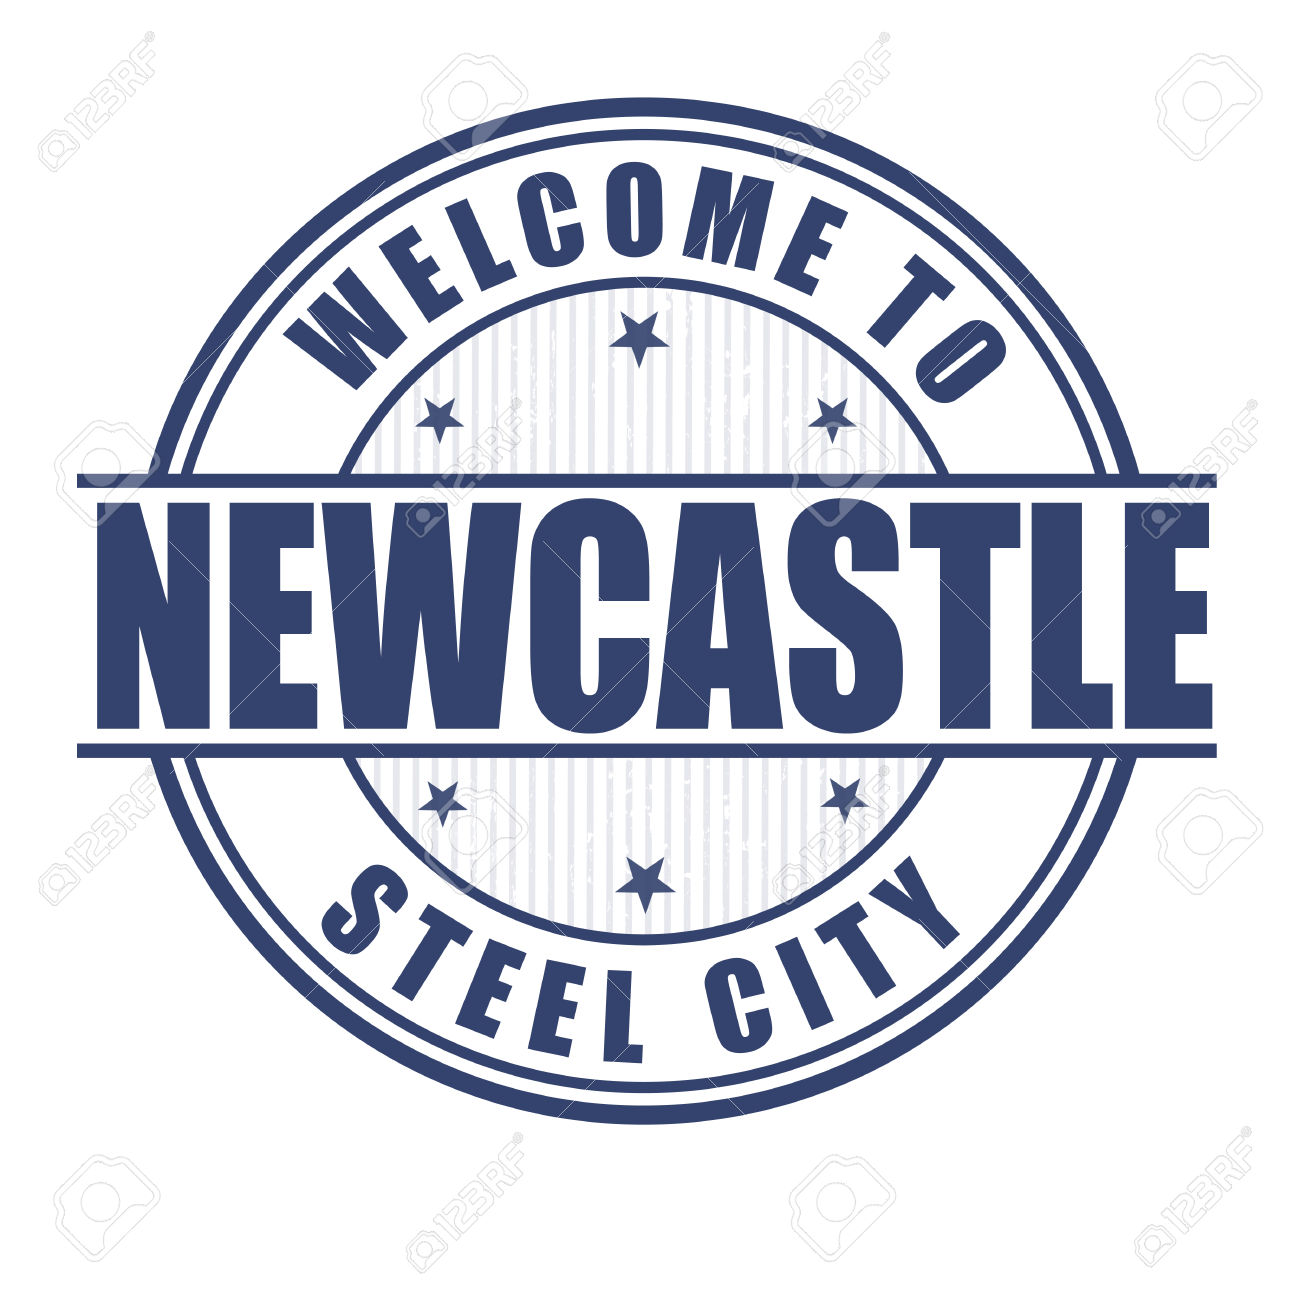 Welcome To Newcastle, Steel City Grunge Rubber Stamp On White.